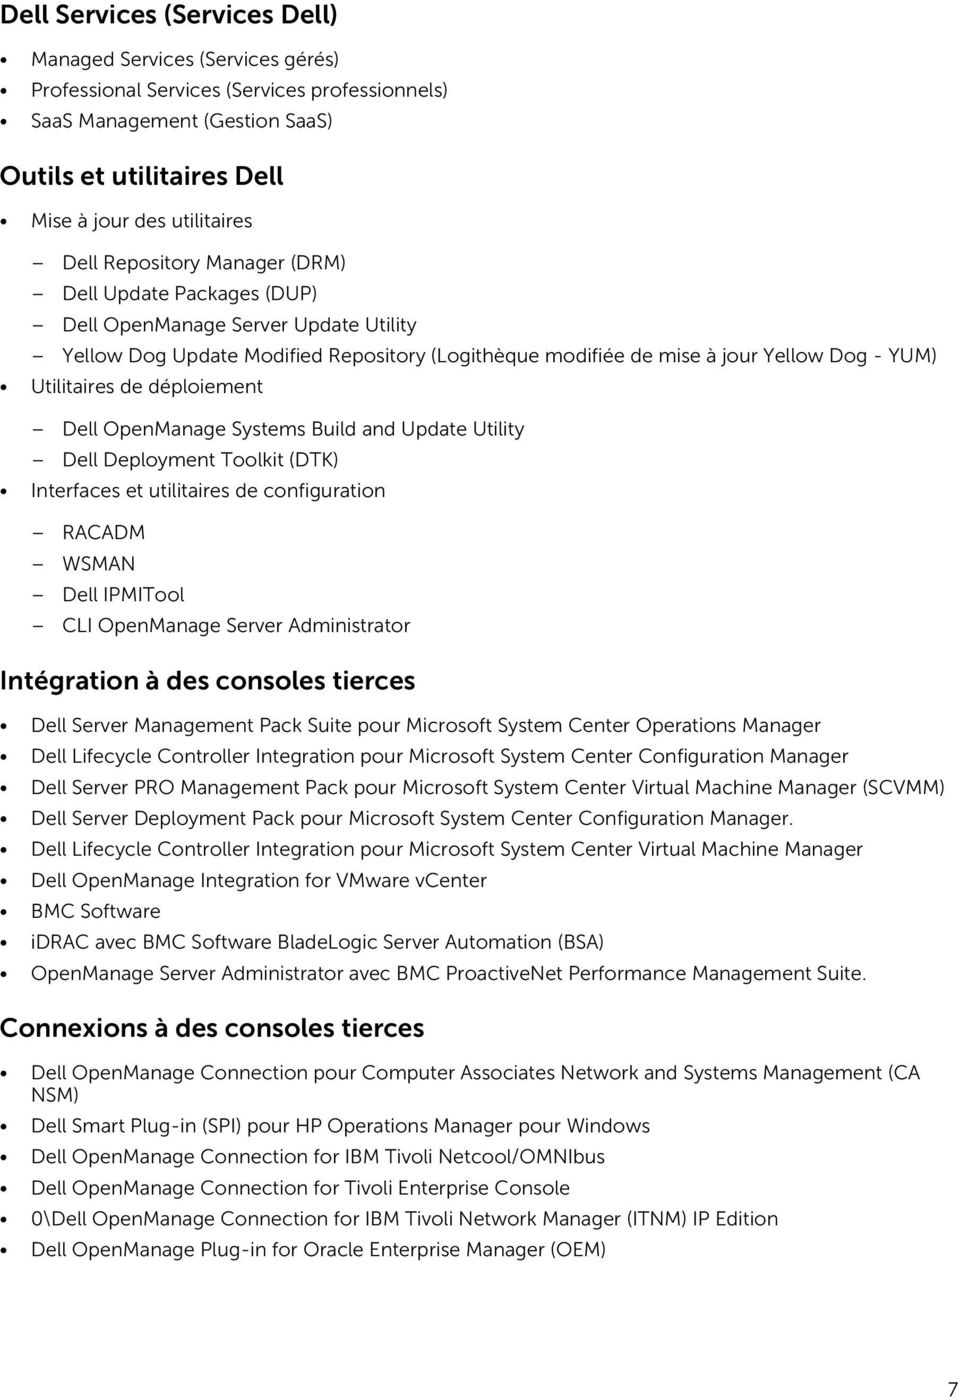 de déploiement Dell OpenManage Systems Build and Update Utility Dell Deployment Toolkit (DTK) Interfaces et utilitaires de configuration RACADM WSMAN Dell IPMITool CLI OpenManage Server Administrator